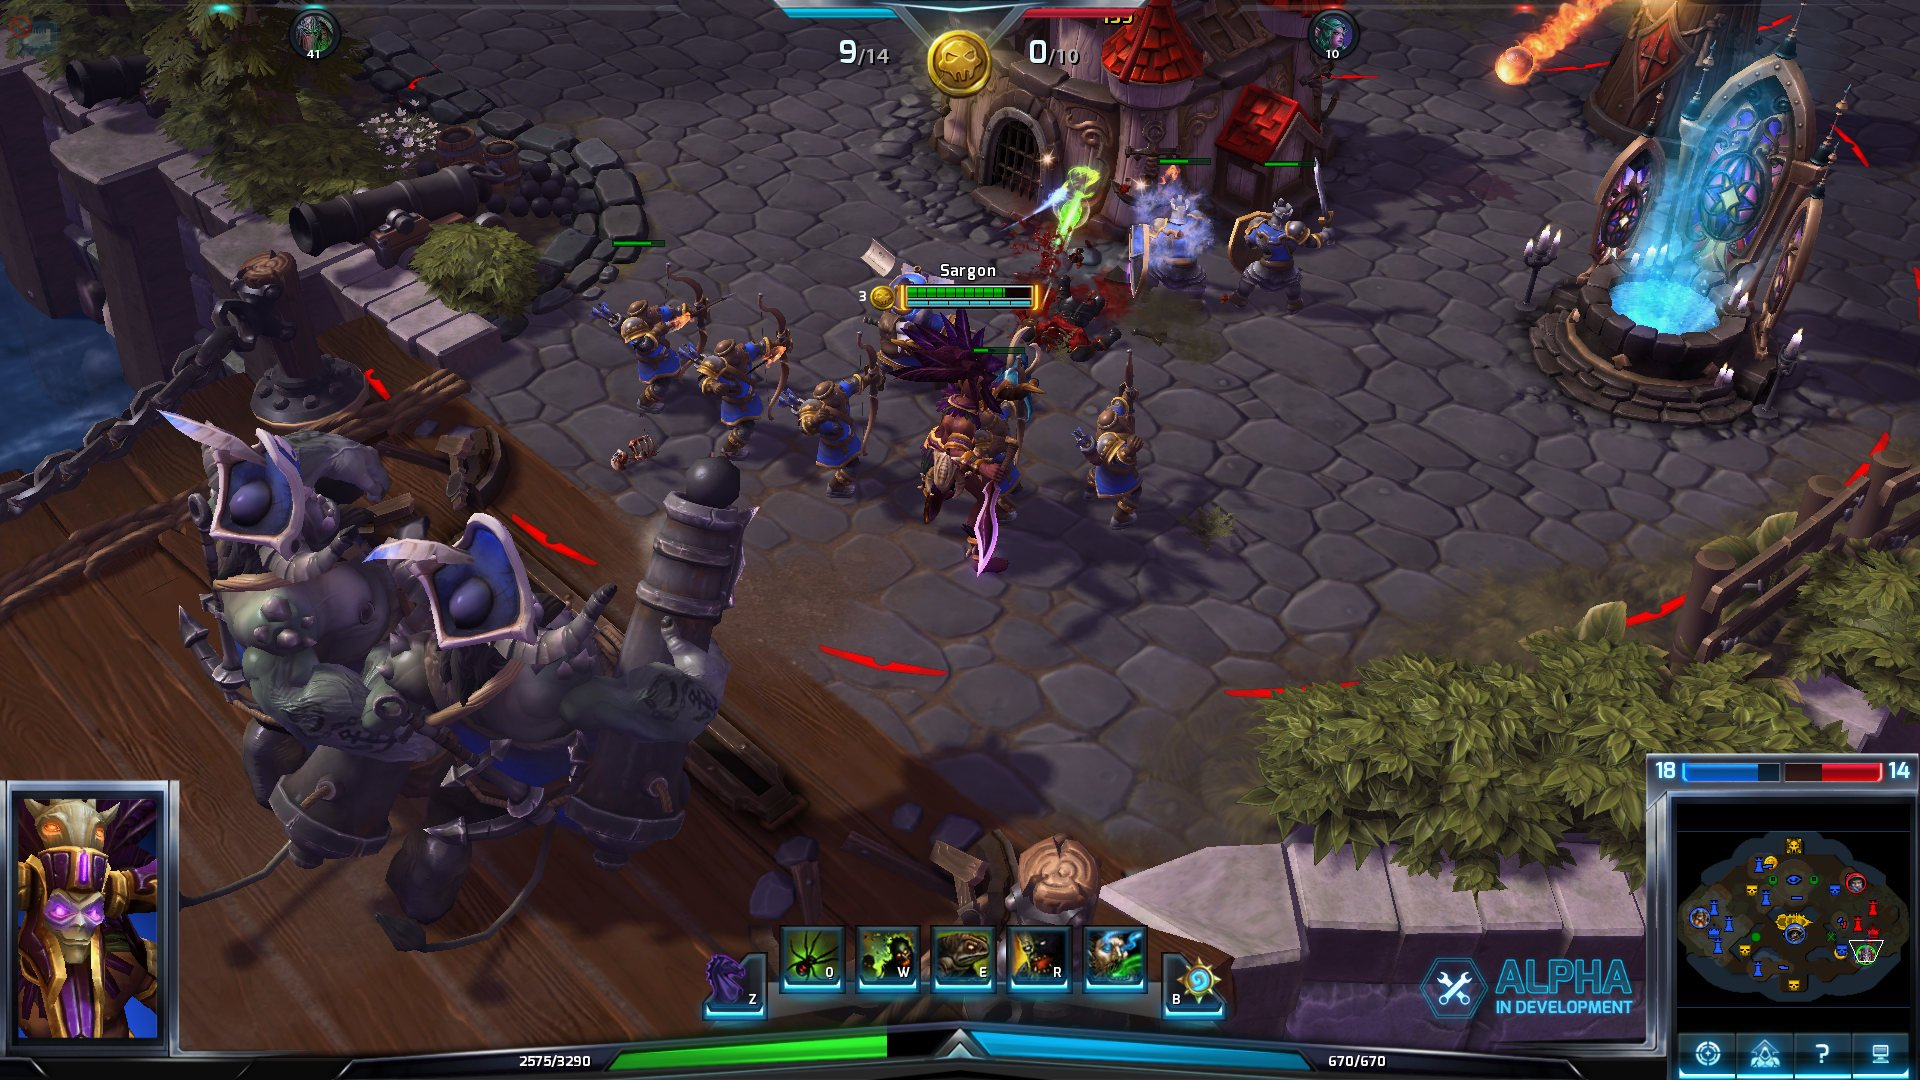 Libros Wow Heroes Of The Storm Así Es El Poderoso Moba De Blizzard